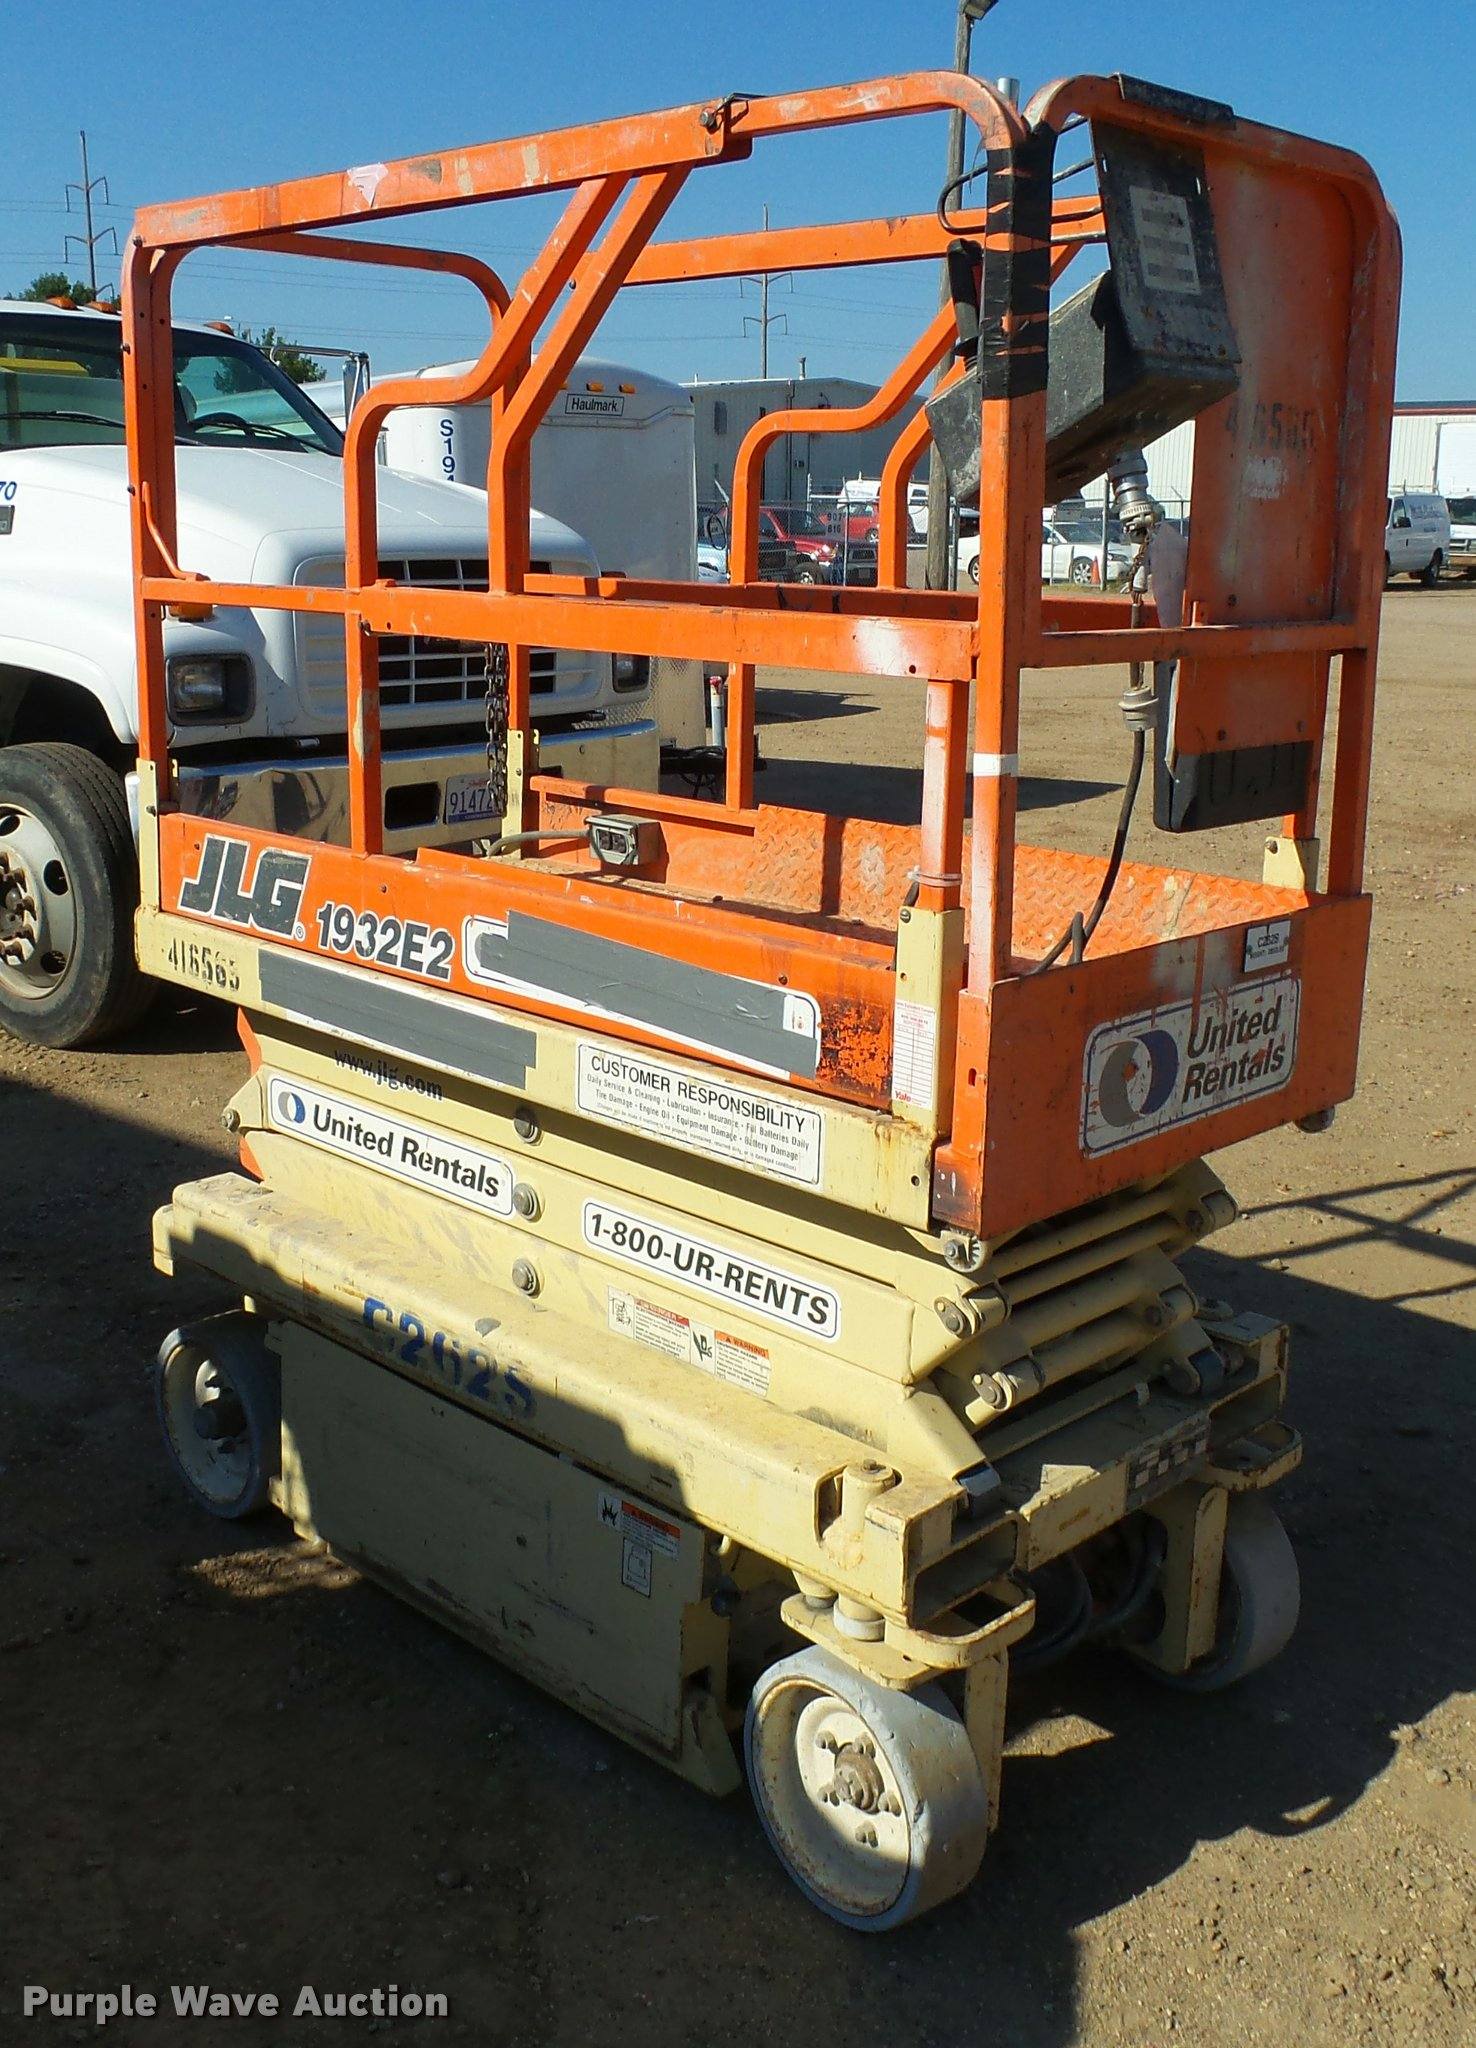 hight resolution of  wiring diagram on jlg 1932e2 scissor lift item al9132 sold september 29 c